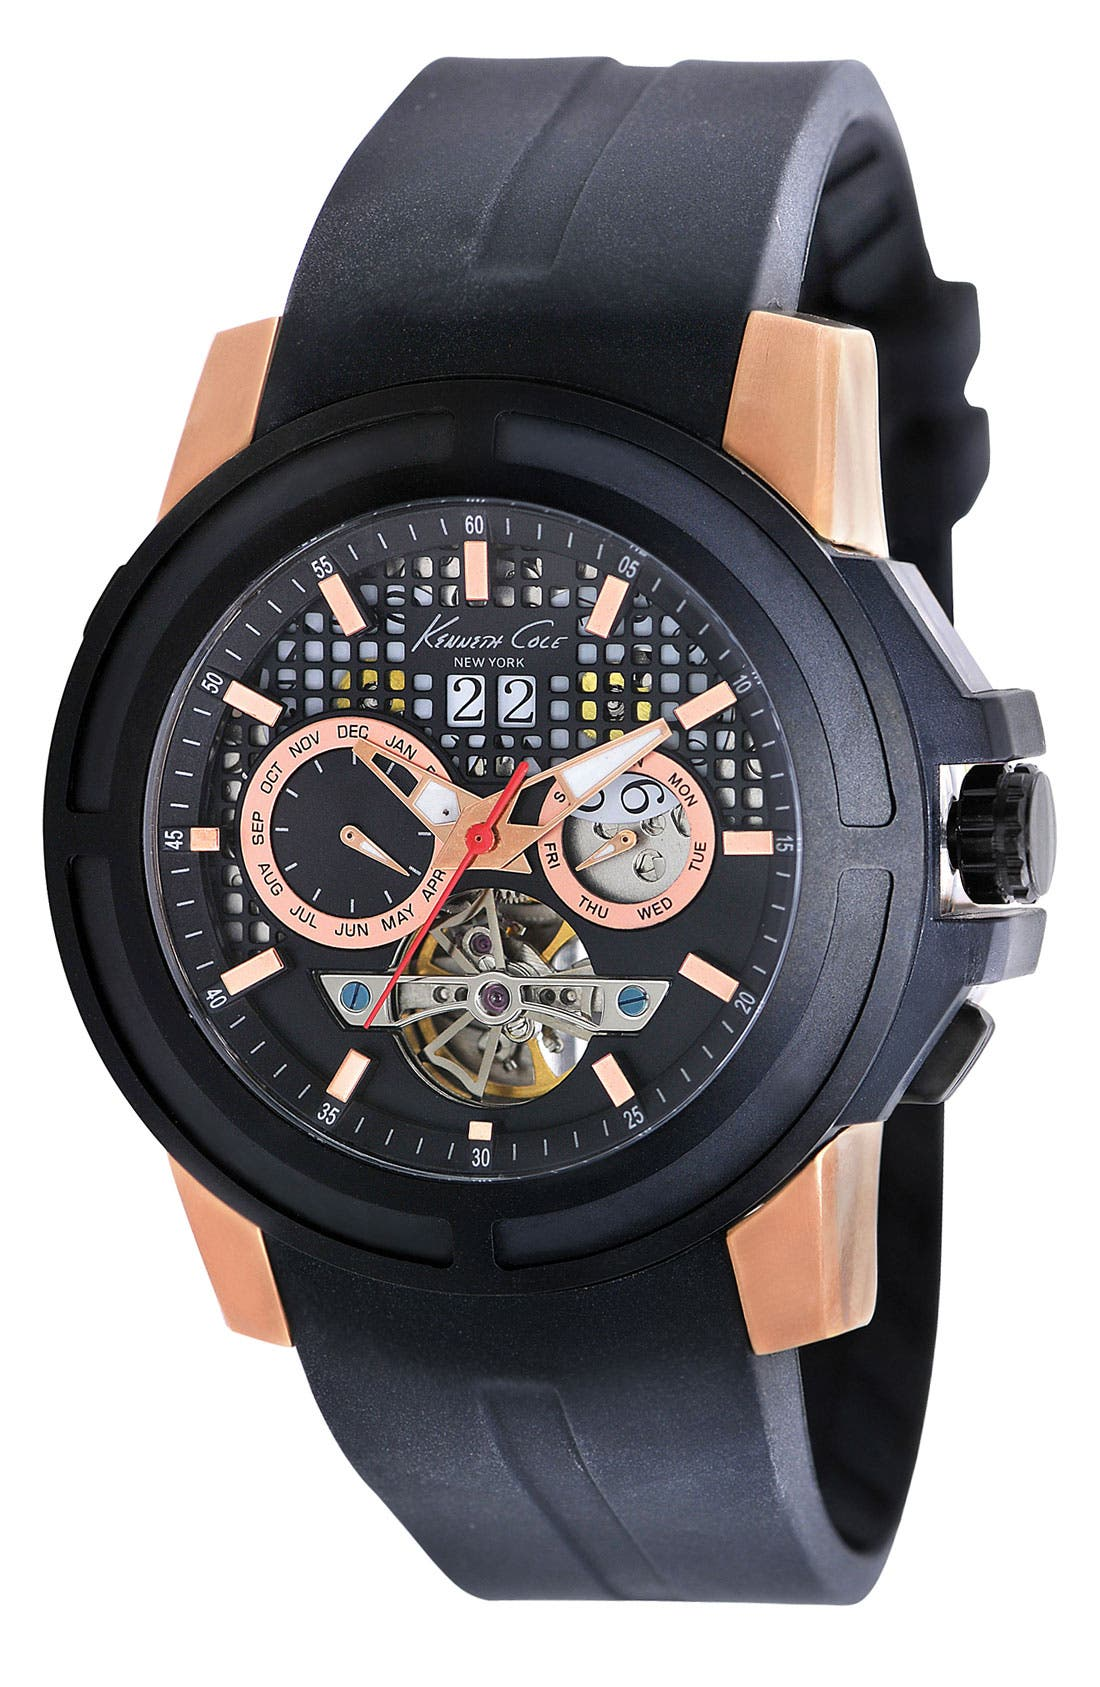 Main Image - Kenneth Cole New York 'Mohawk' Automatic Watch